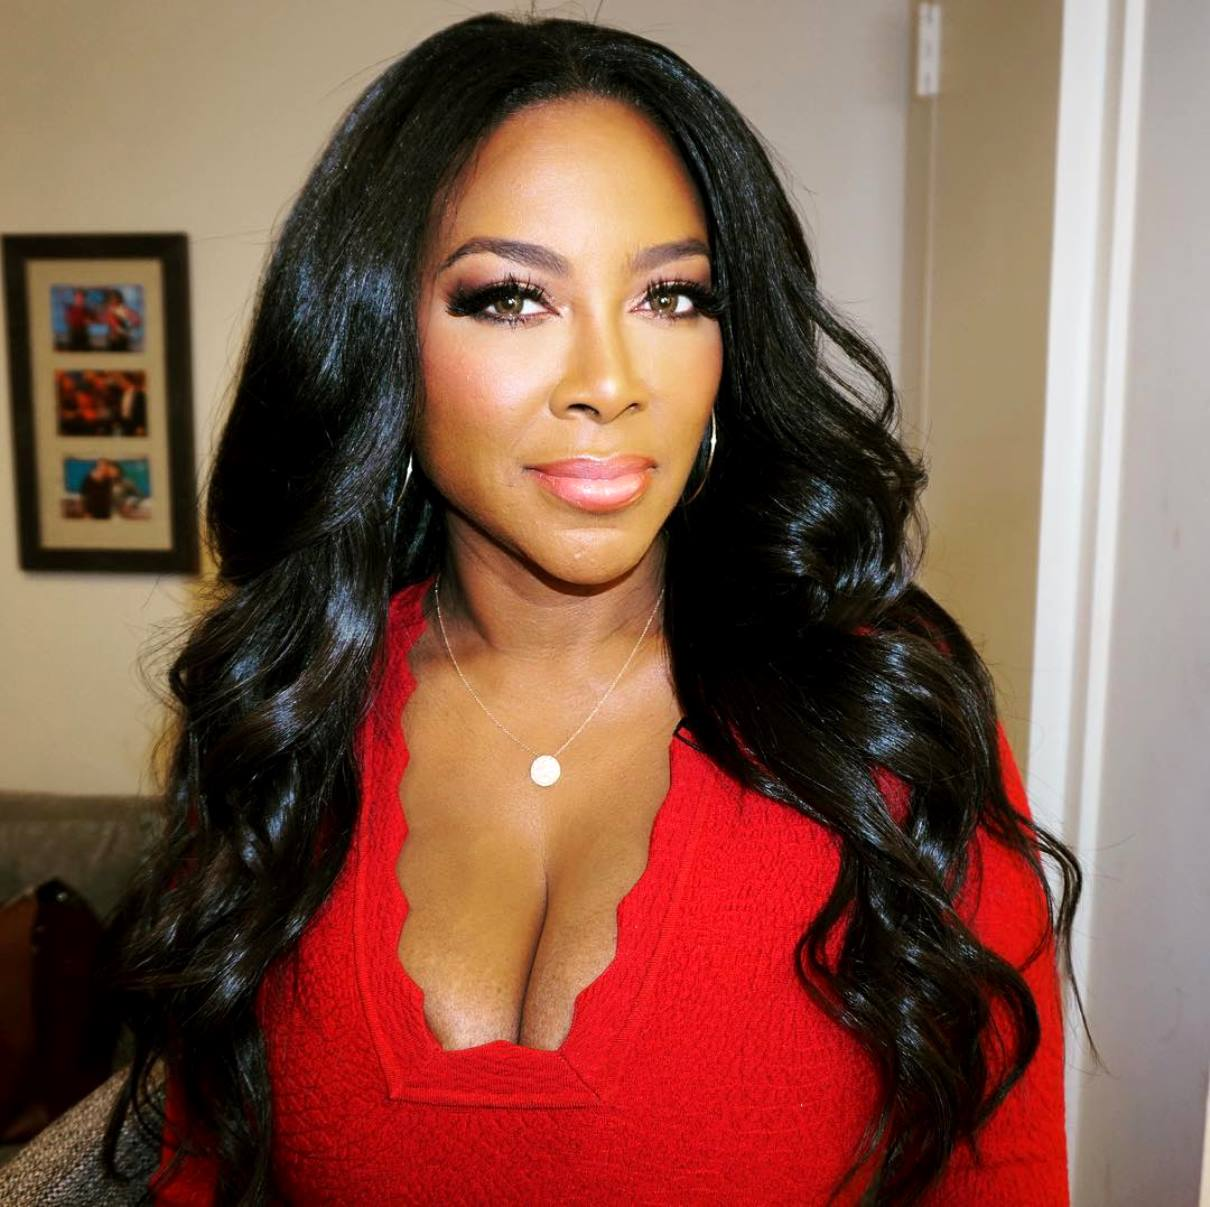 Kenya Moore's Fans Debate Whether She Should Go Back To RHOA Or Keep Herself For Something More Appropriate For Her 'Class, Talent And Stature'